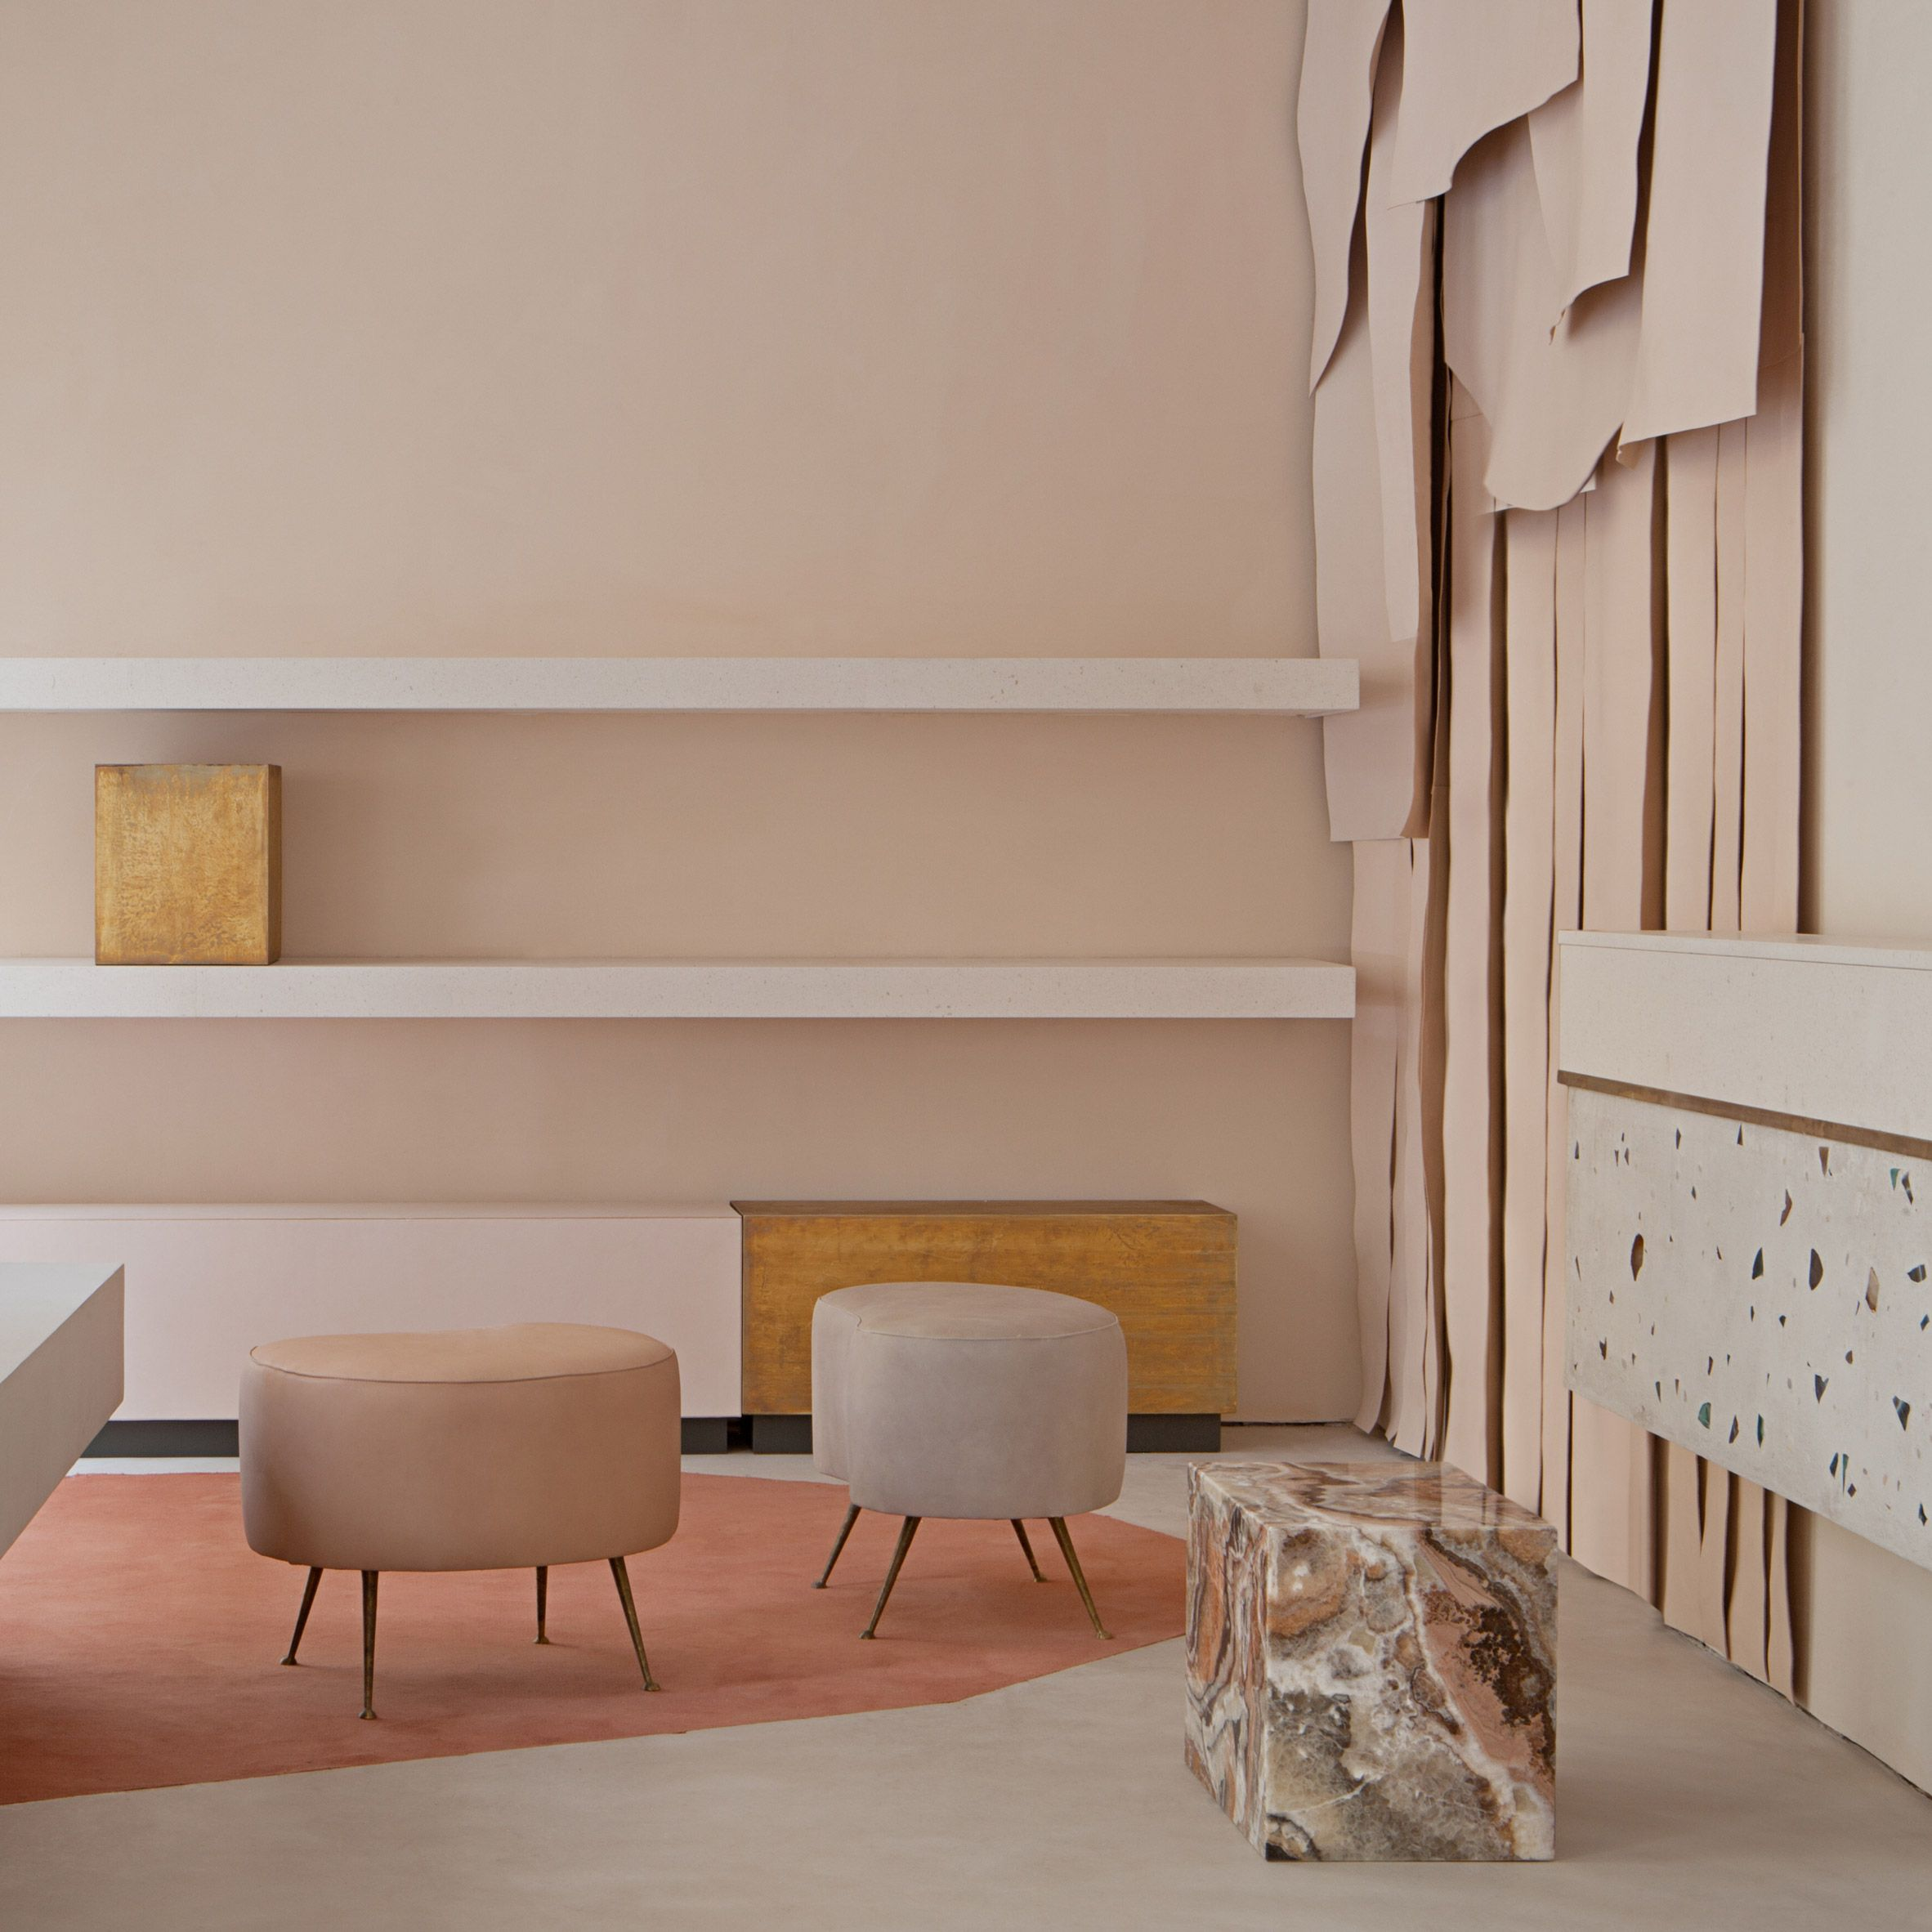 Discount Mobili Napoli Ciszak Dalmas Integrates Materials From Fashion Label S